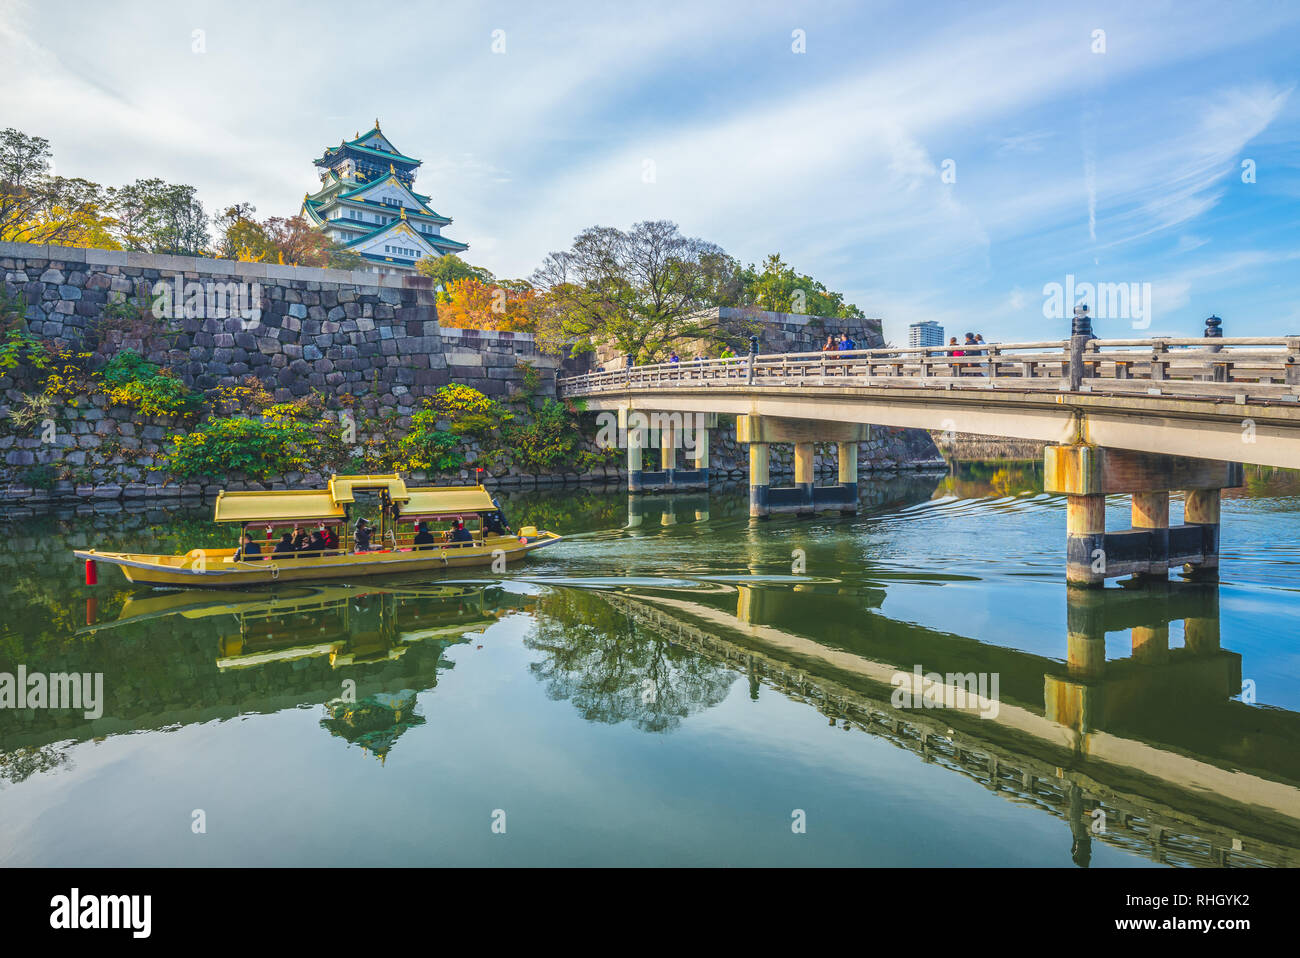 Osaka Castle, a tourist boat in the moat - Stock Image